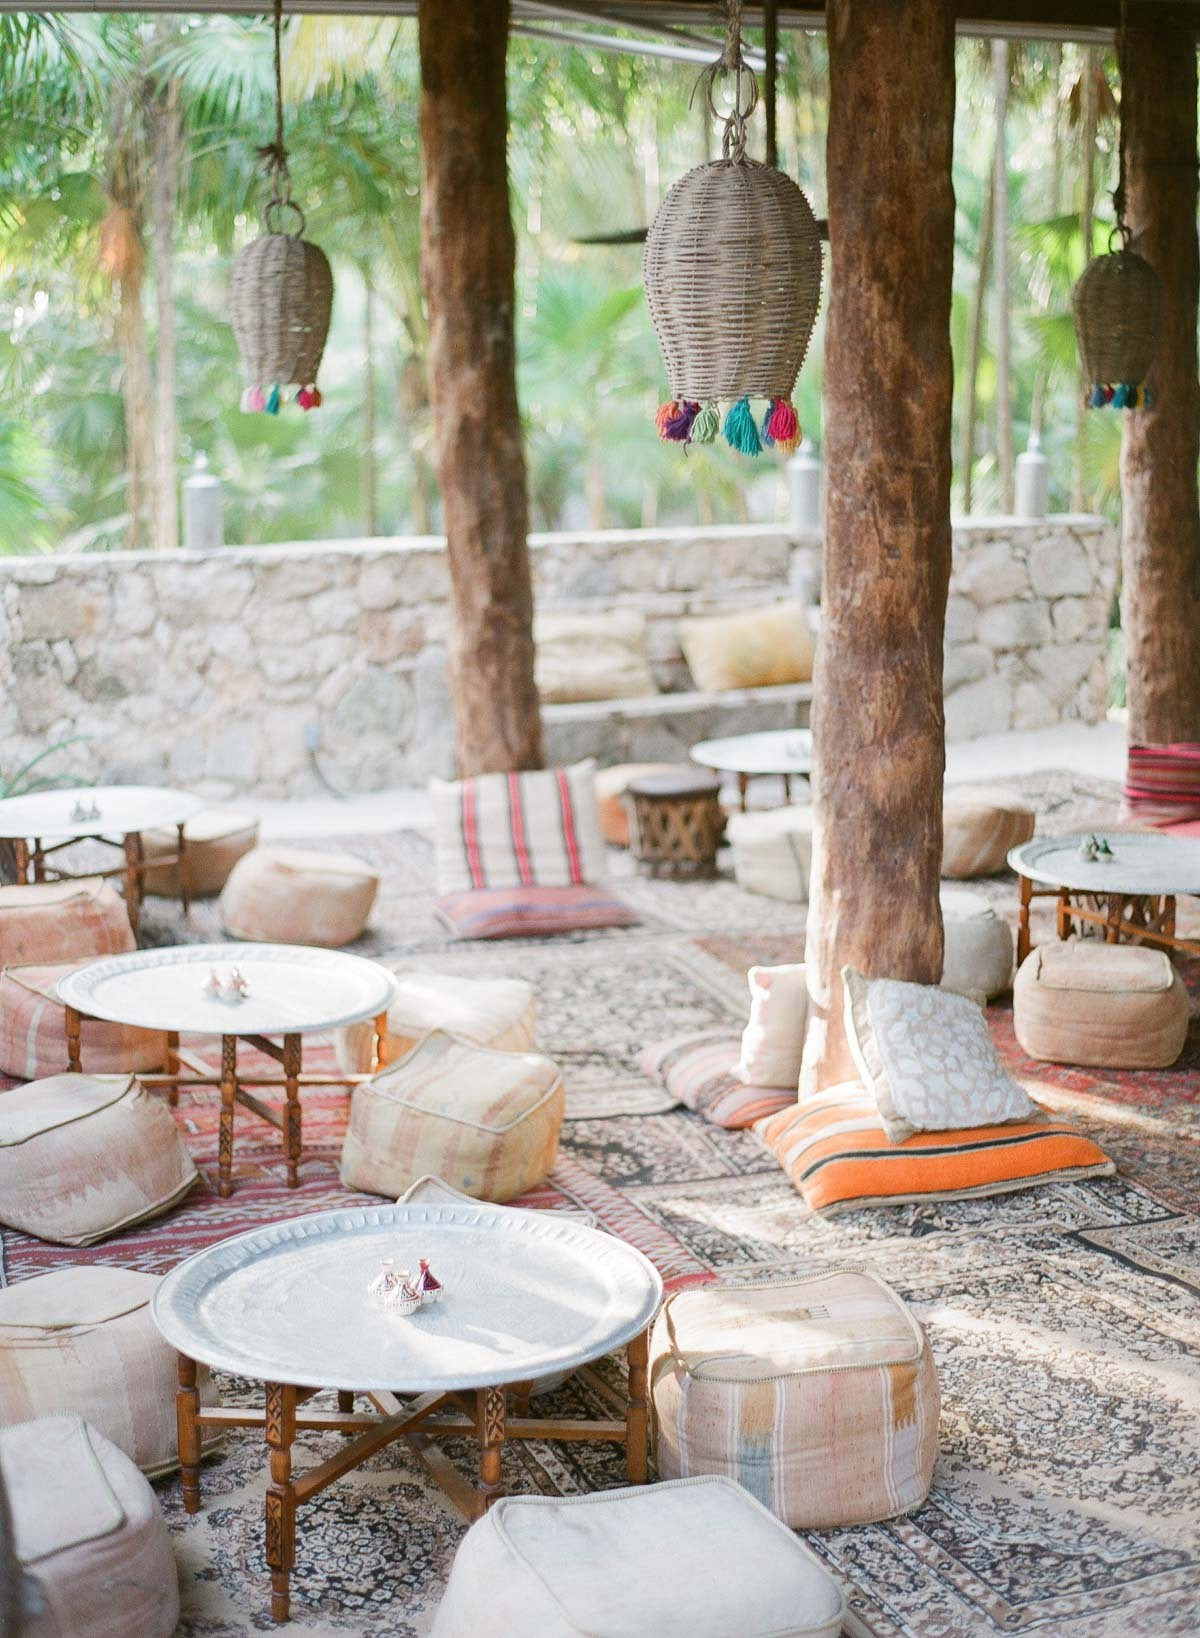 Tulum: A tropical honeymoon paradise